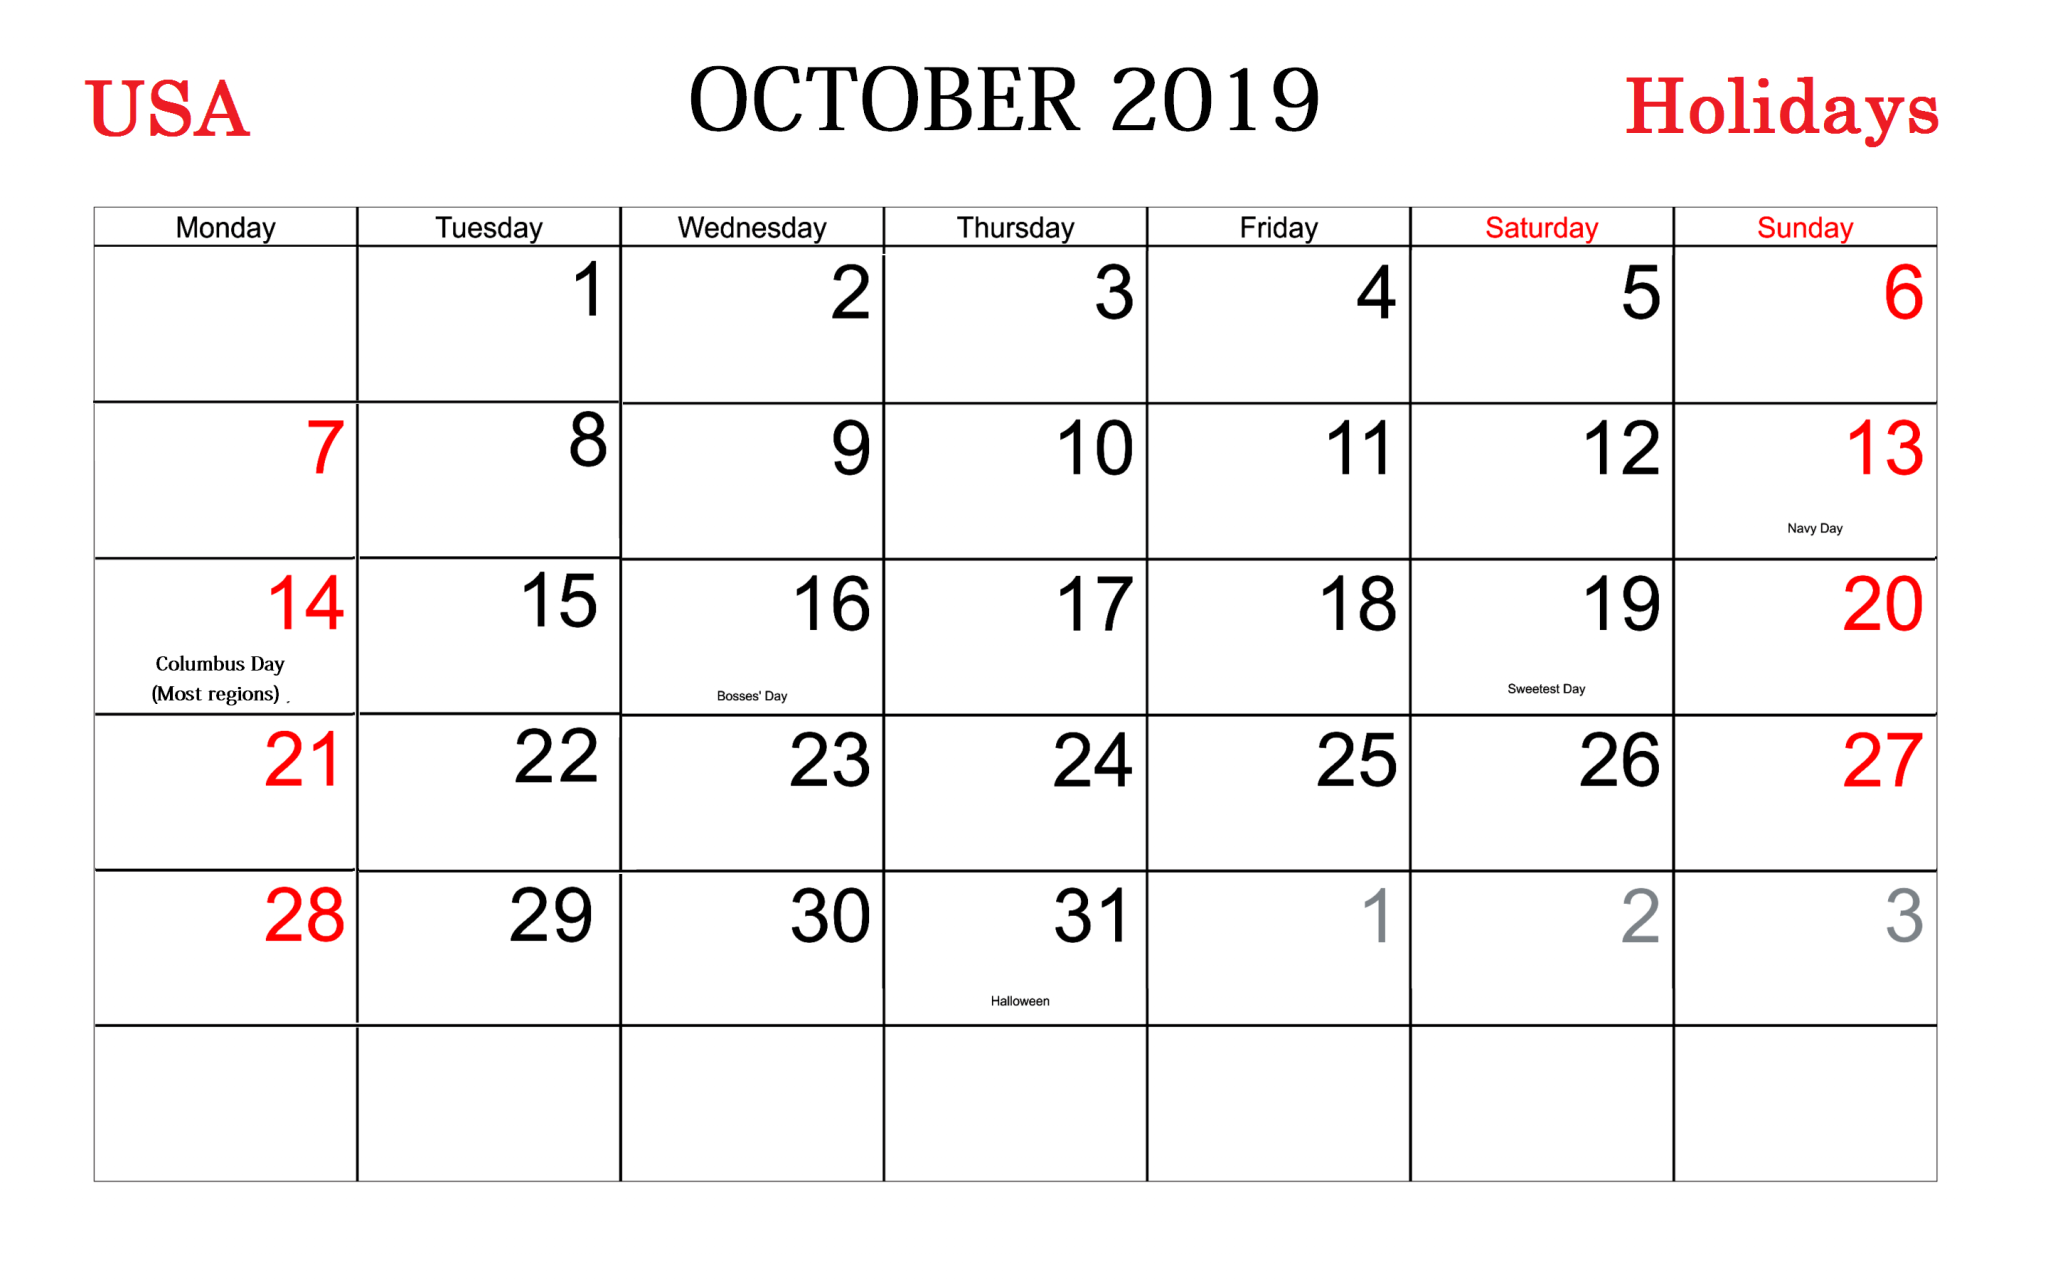 Holidays Calendar of October 2019